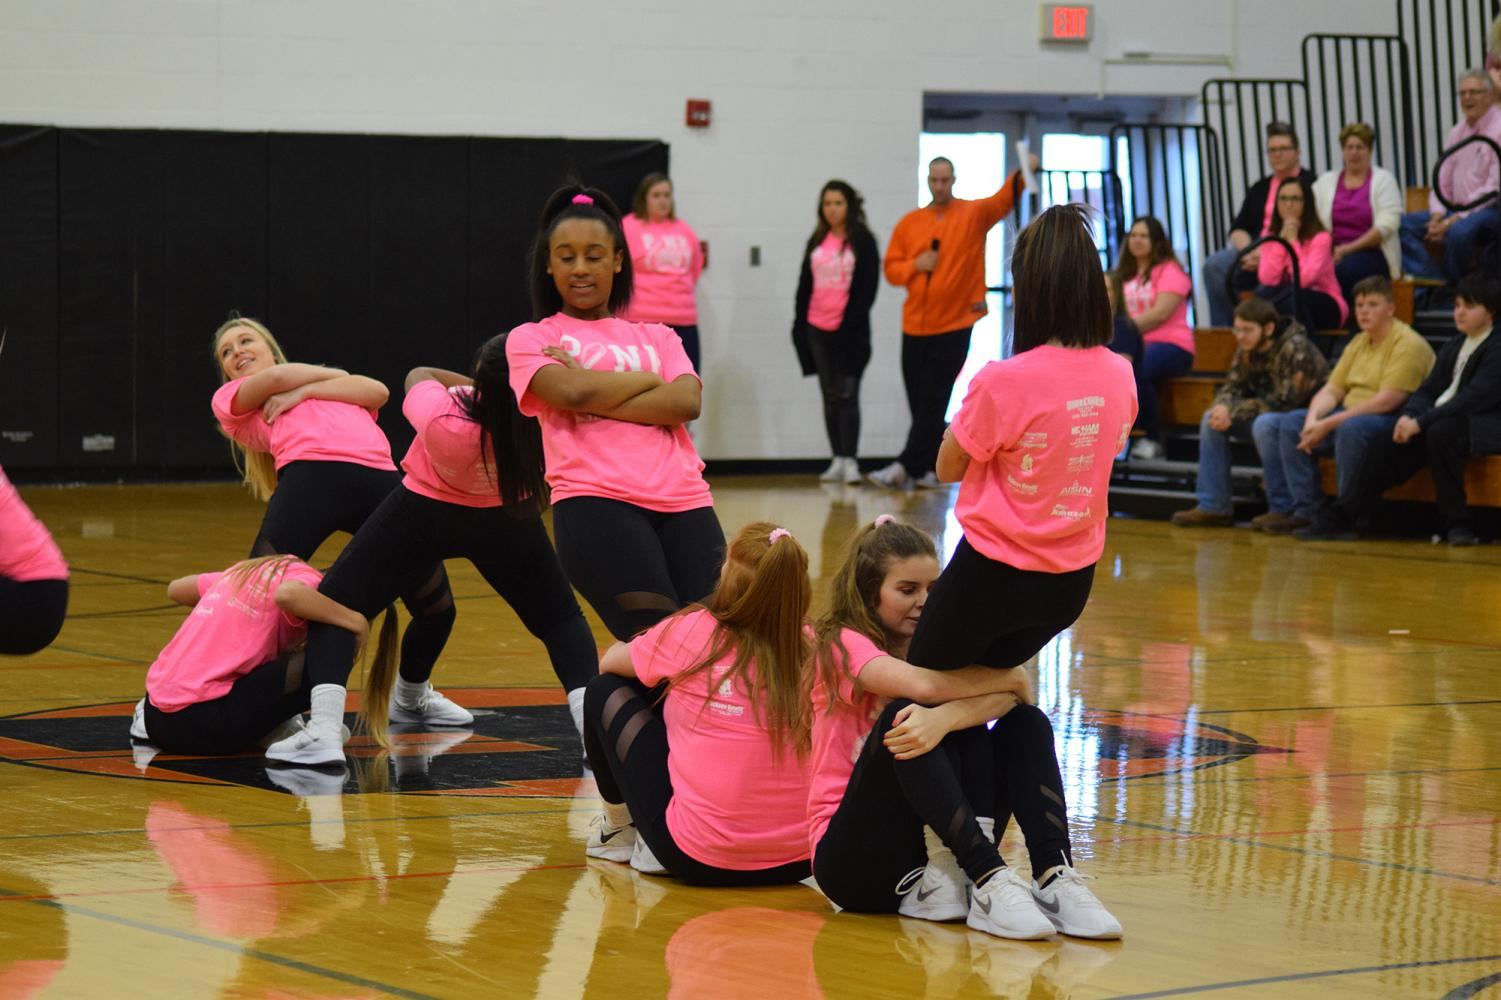 The+Herrin+High+dance+team+performs+during+the+pep+rally.+